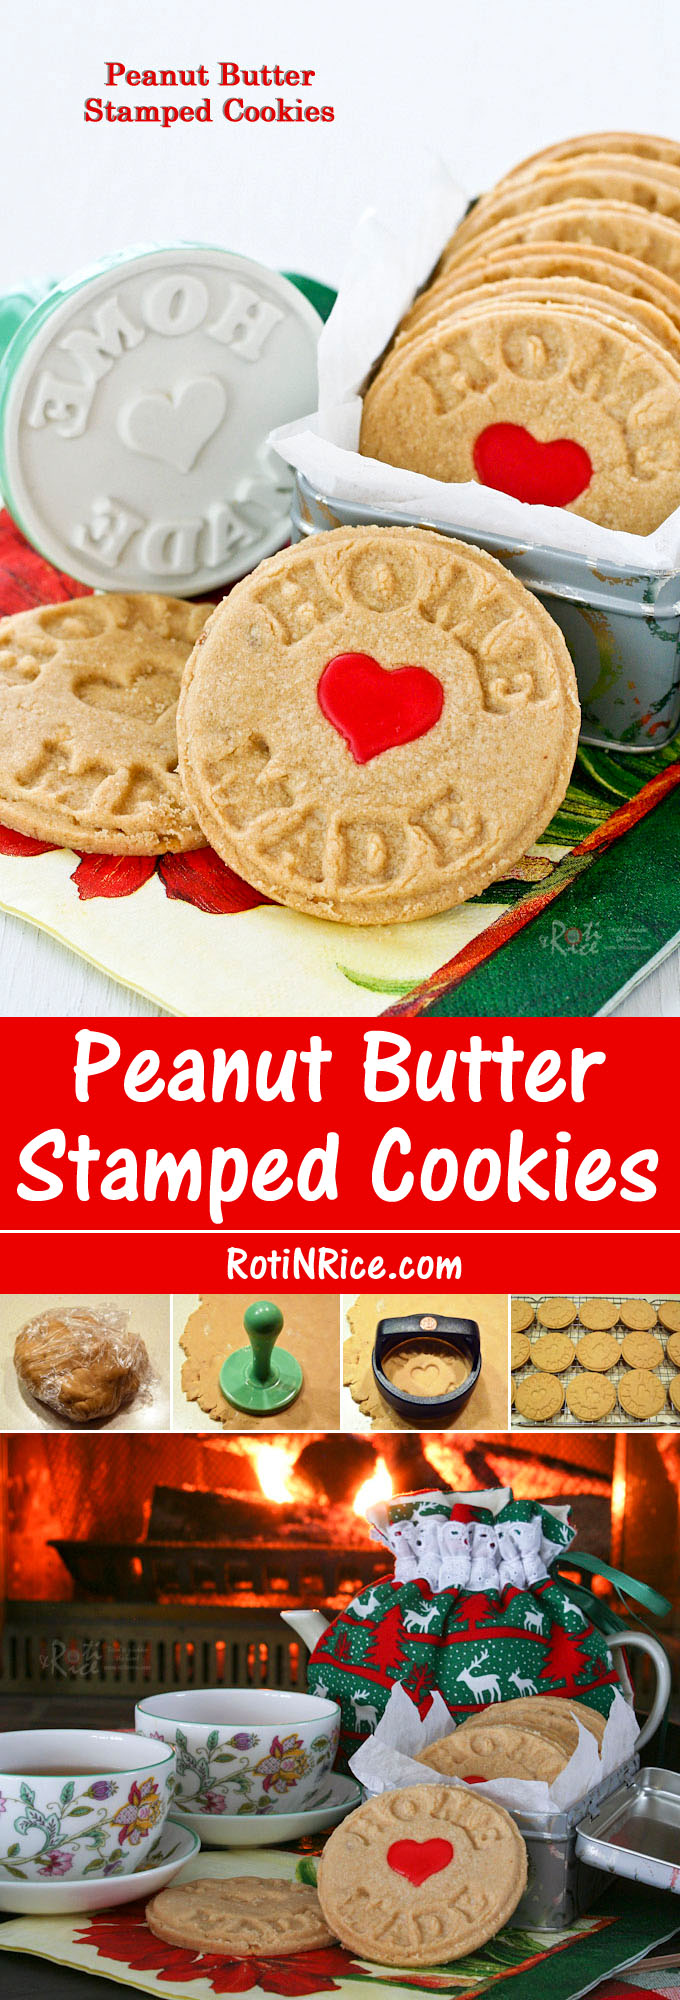 These buttery and fragrant Peanut Butter Stamped Cookies uses only 4 ingredients. They make a delightful tea time treat or snack. | Food to gladden the heart at RotiNRice.com